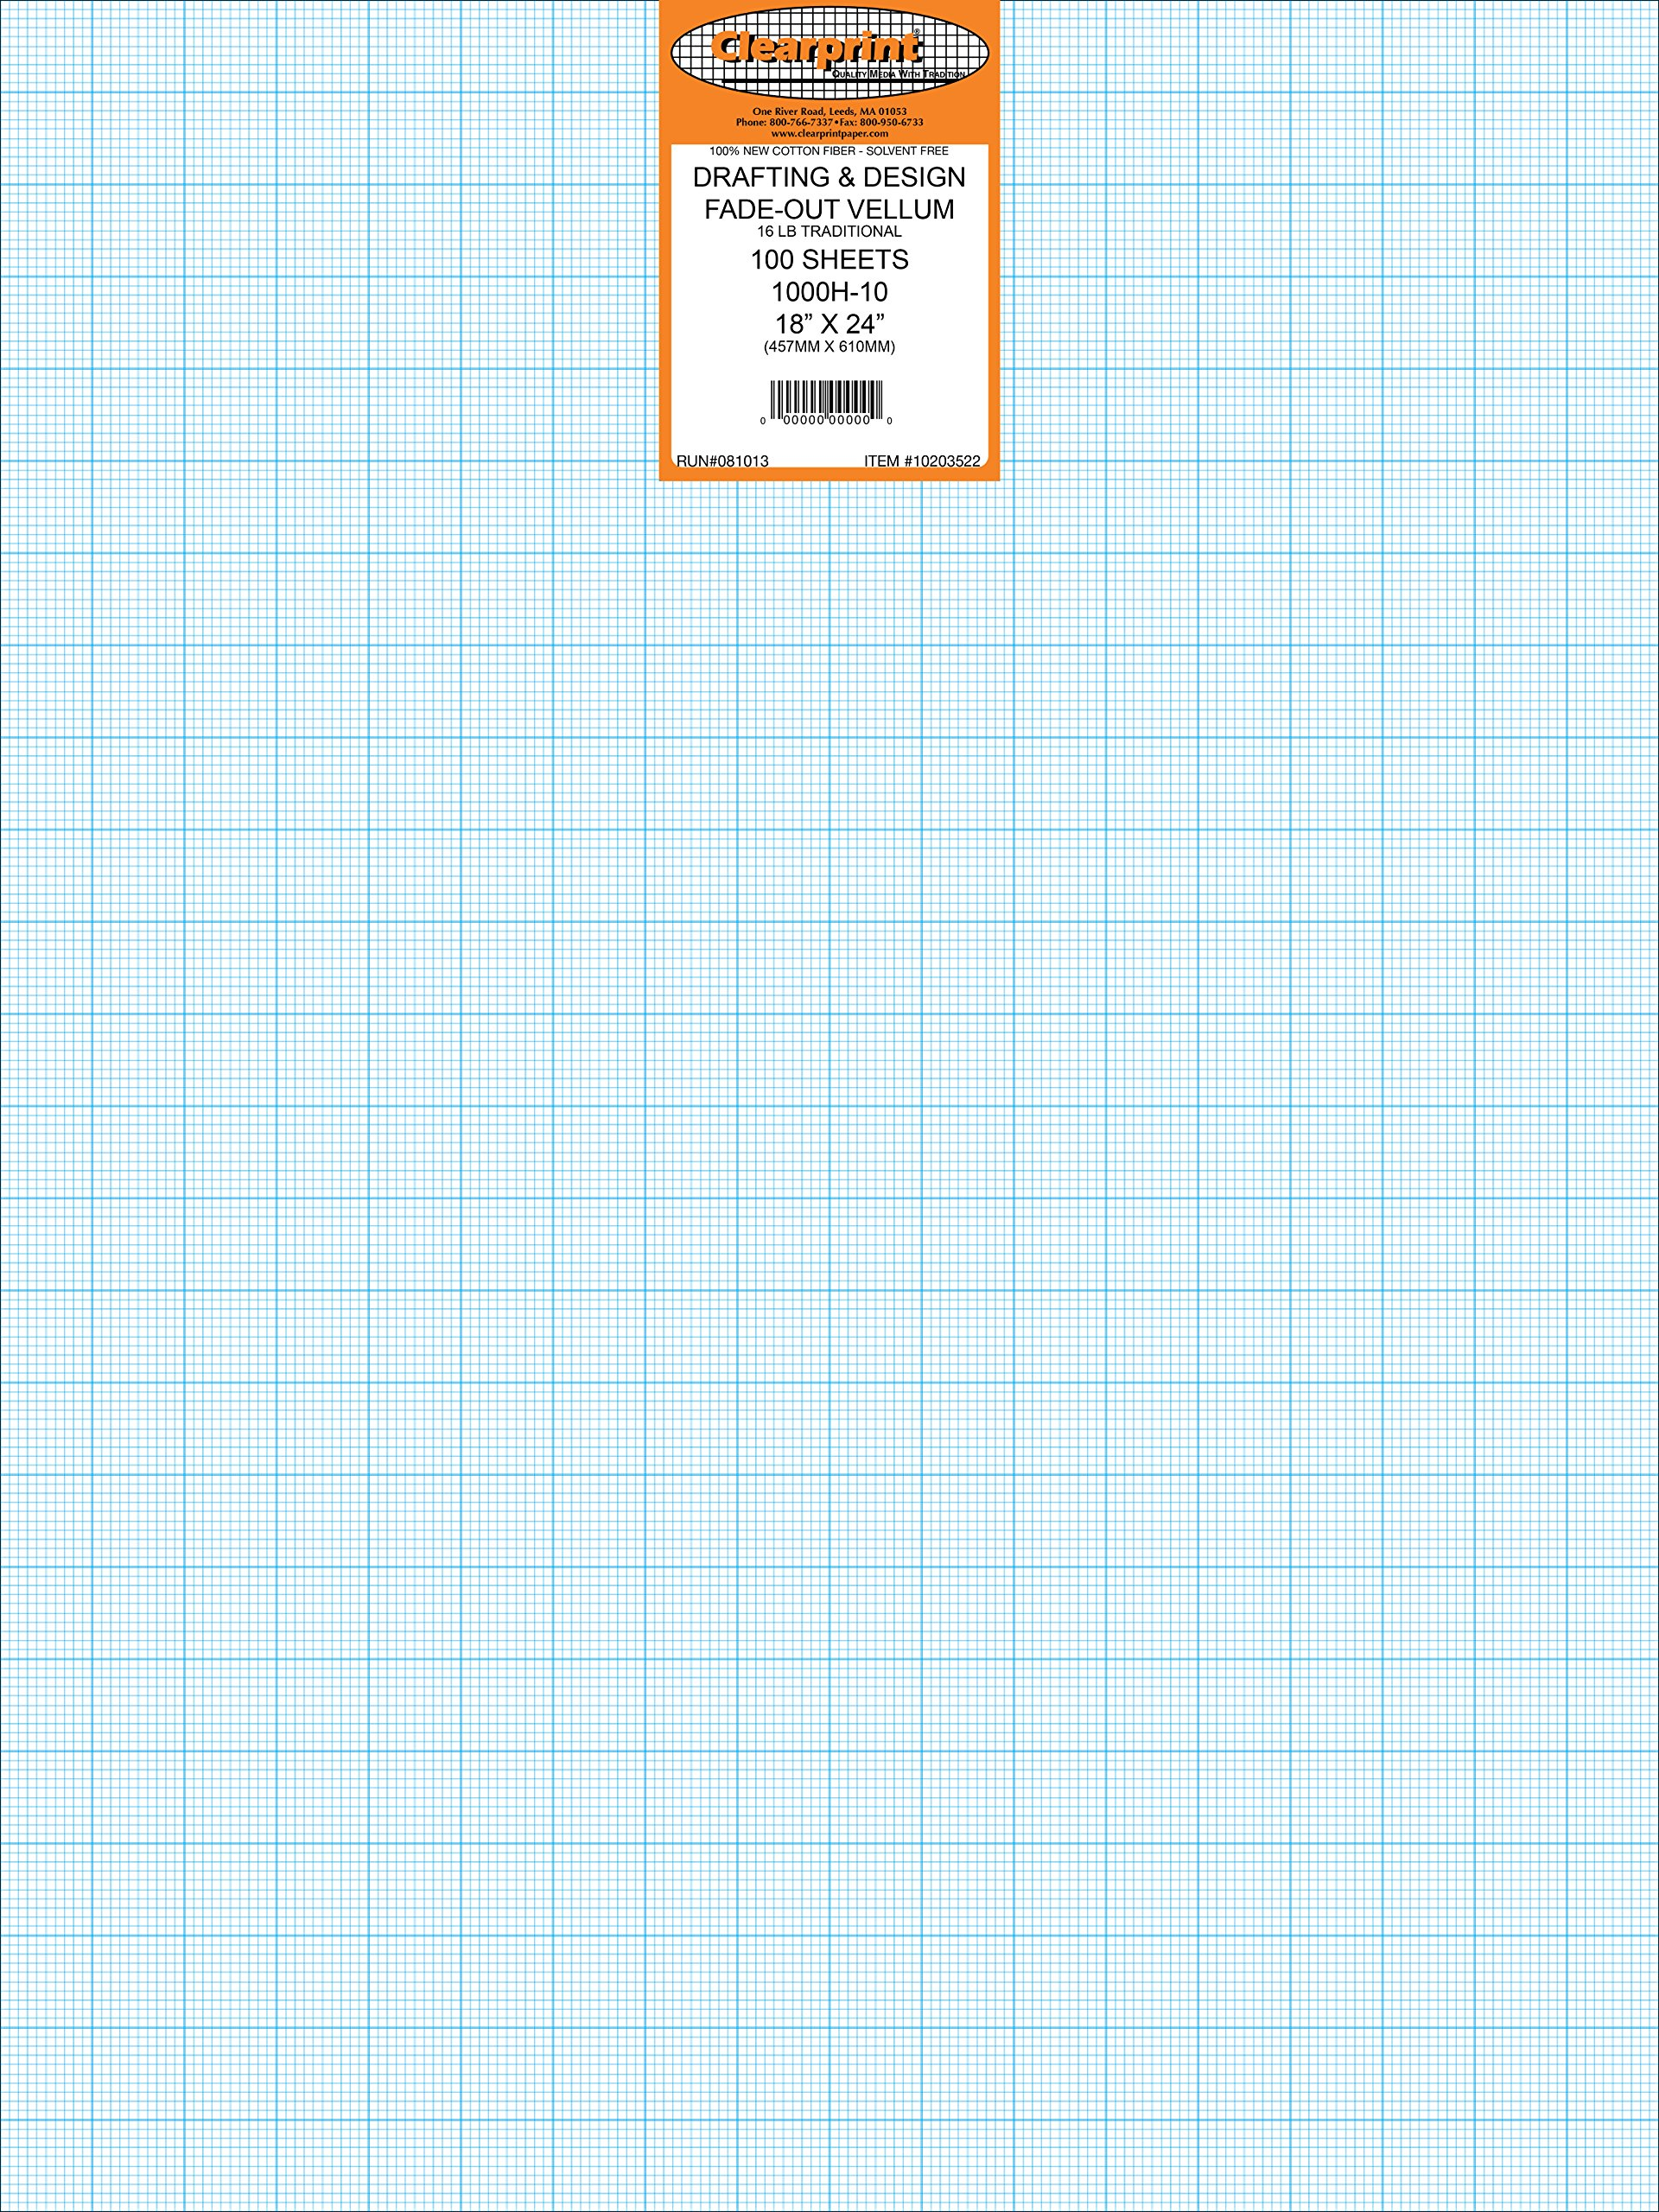 Clearprint 1000H Design Vellum Sheets with Printed Fade-Out 10x10 Grid, 100% Cotton, 18 x 24 Inches, 100 Sheets Per Pack, Translucent White (10203522) by Clearprint